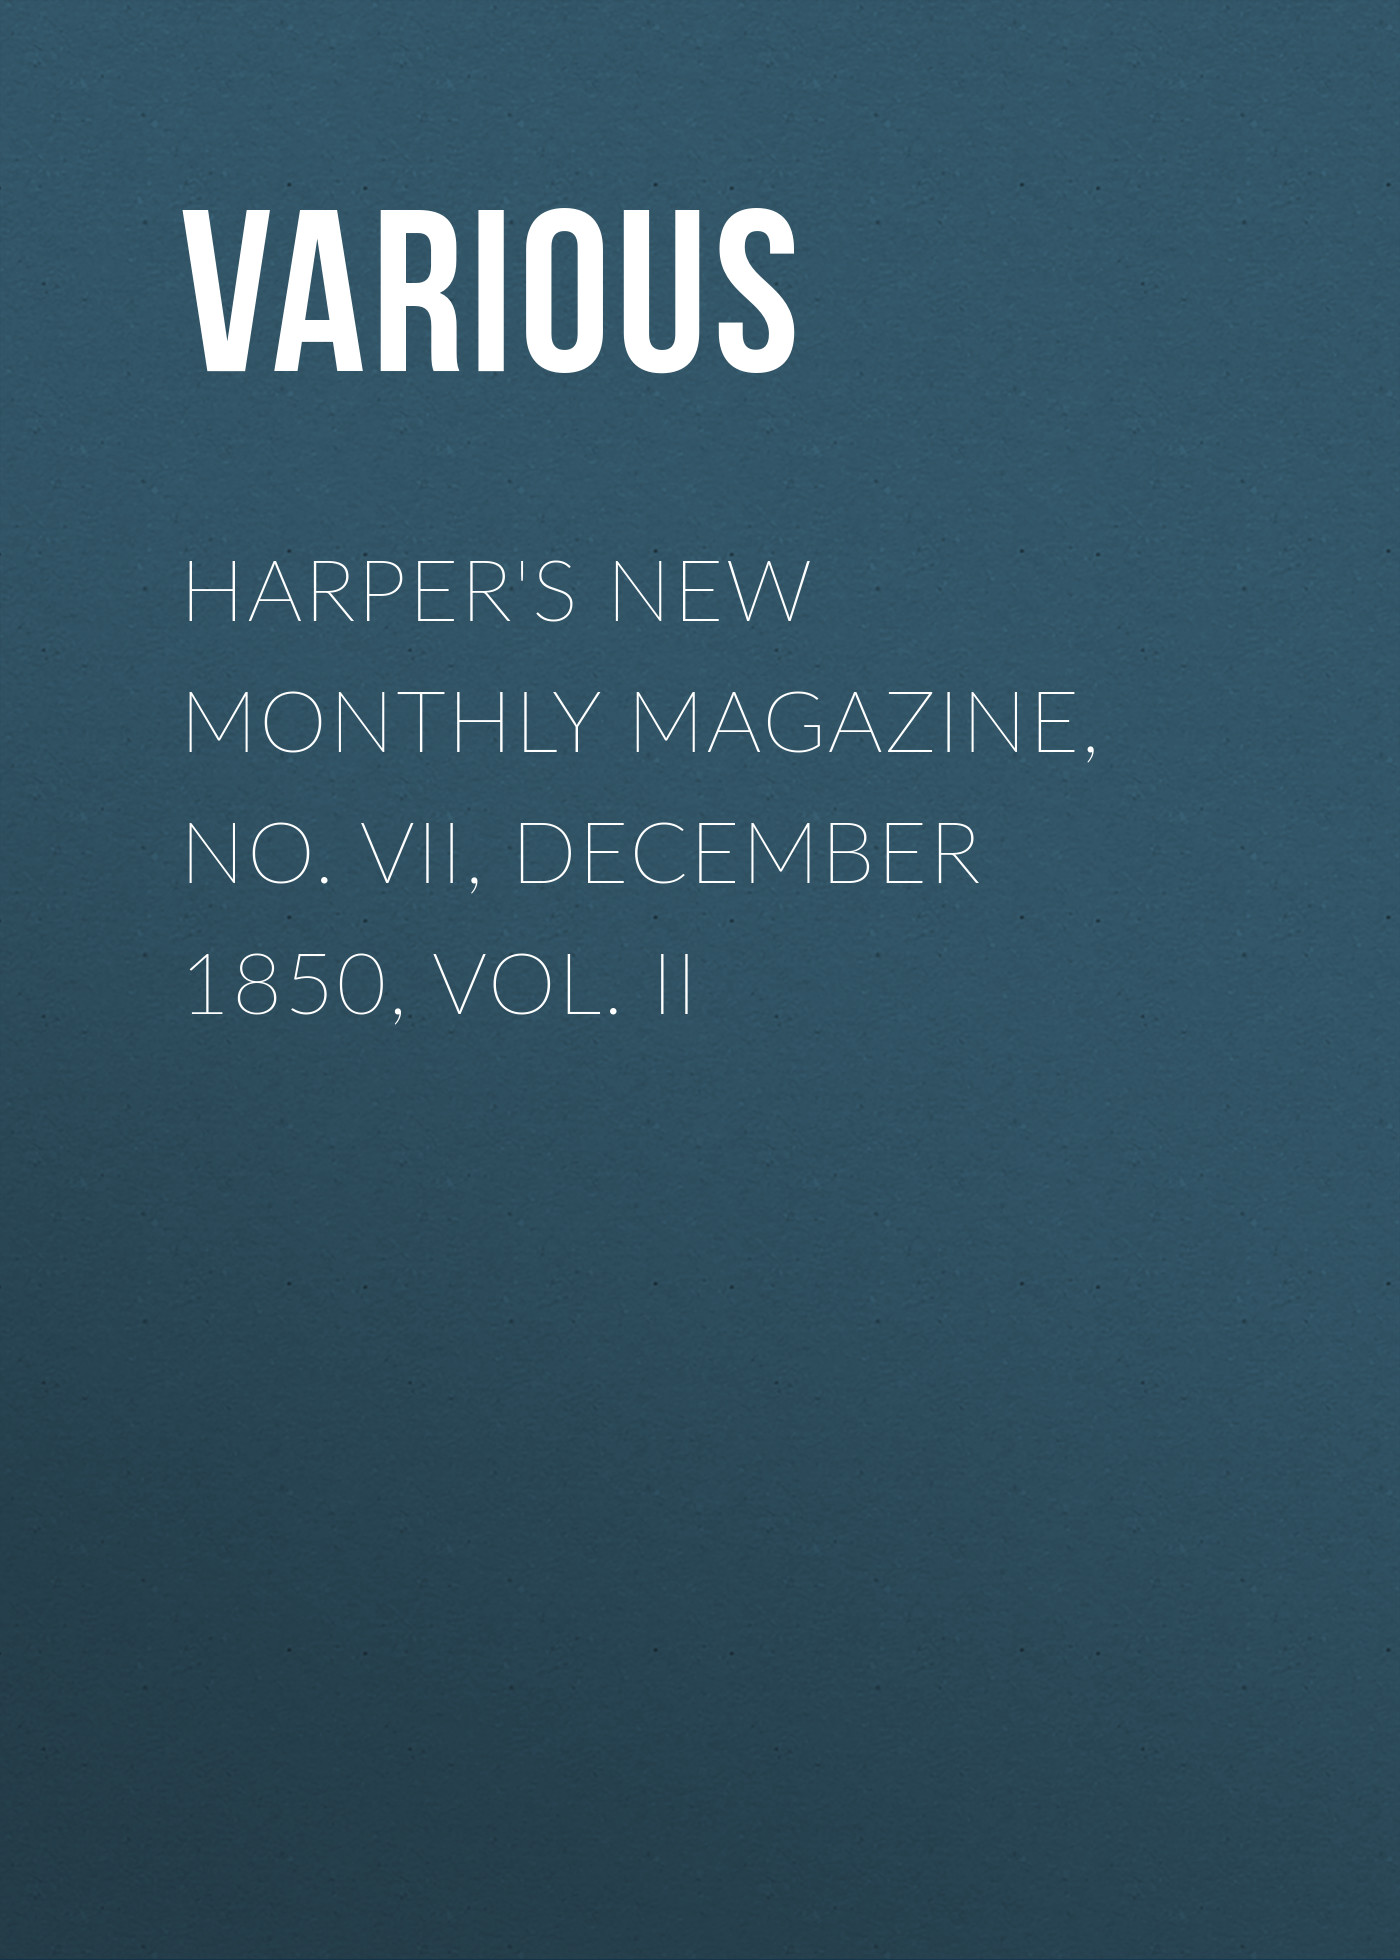 Various Harper's New Monthly Magazine, No. VII, December 1850, Vol. II драйвера для веб камеры genius